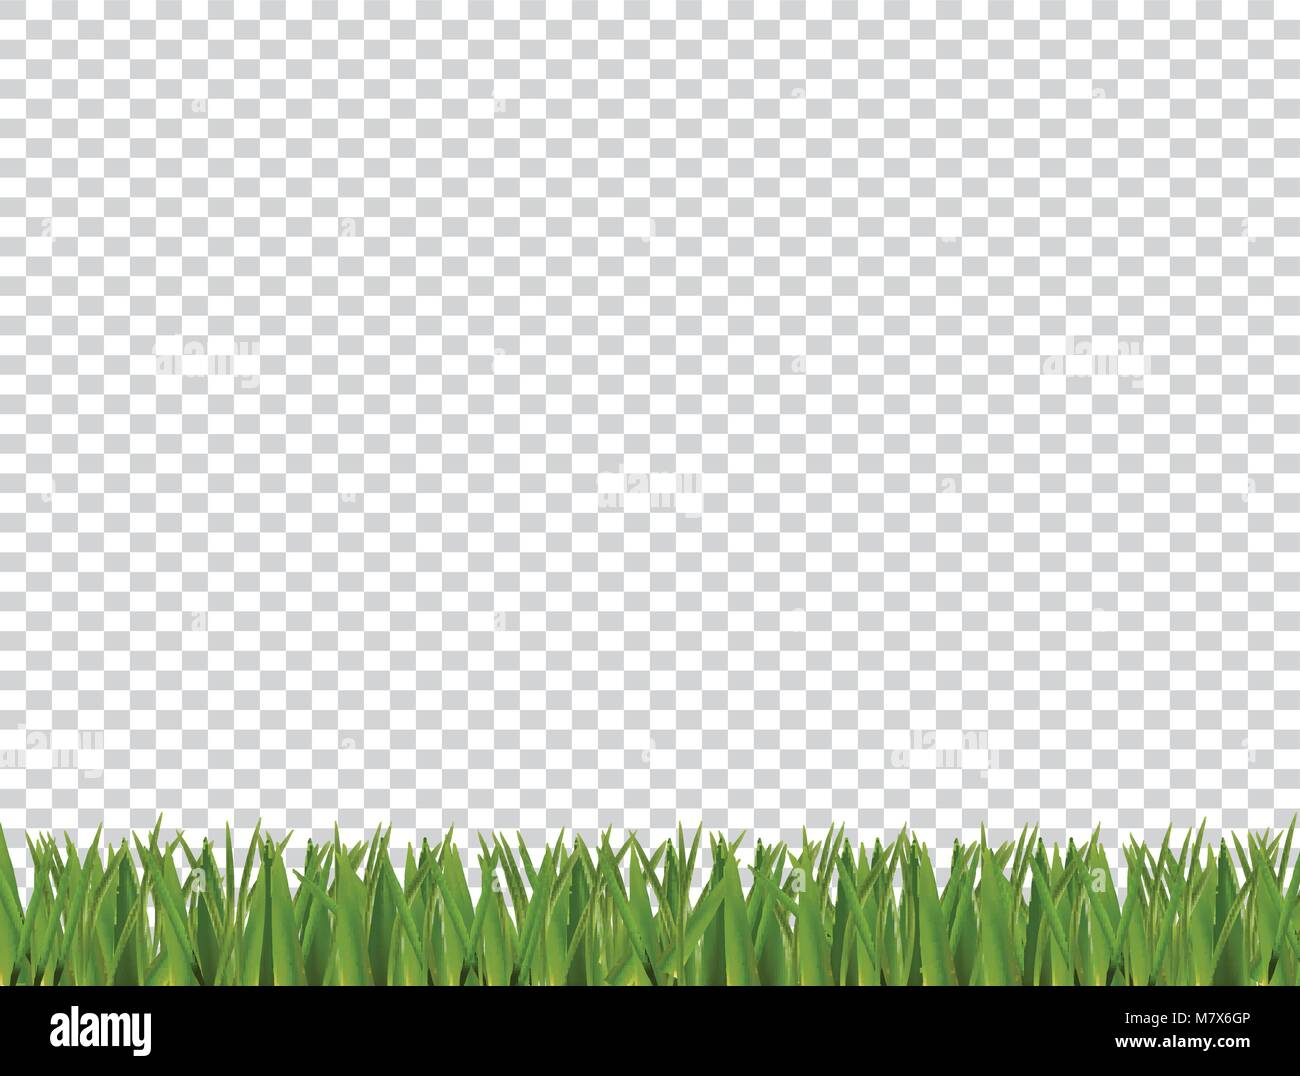 Green realistic grass horizontal border isolated on transparent ...